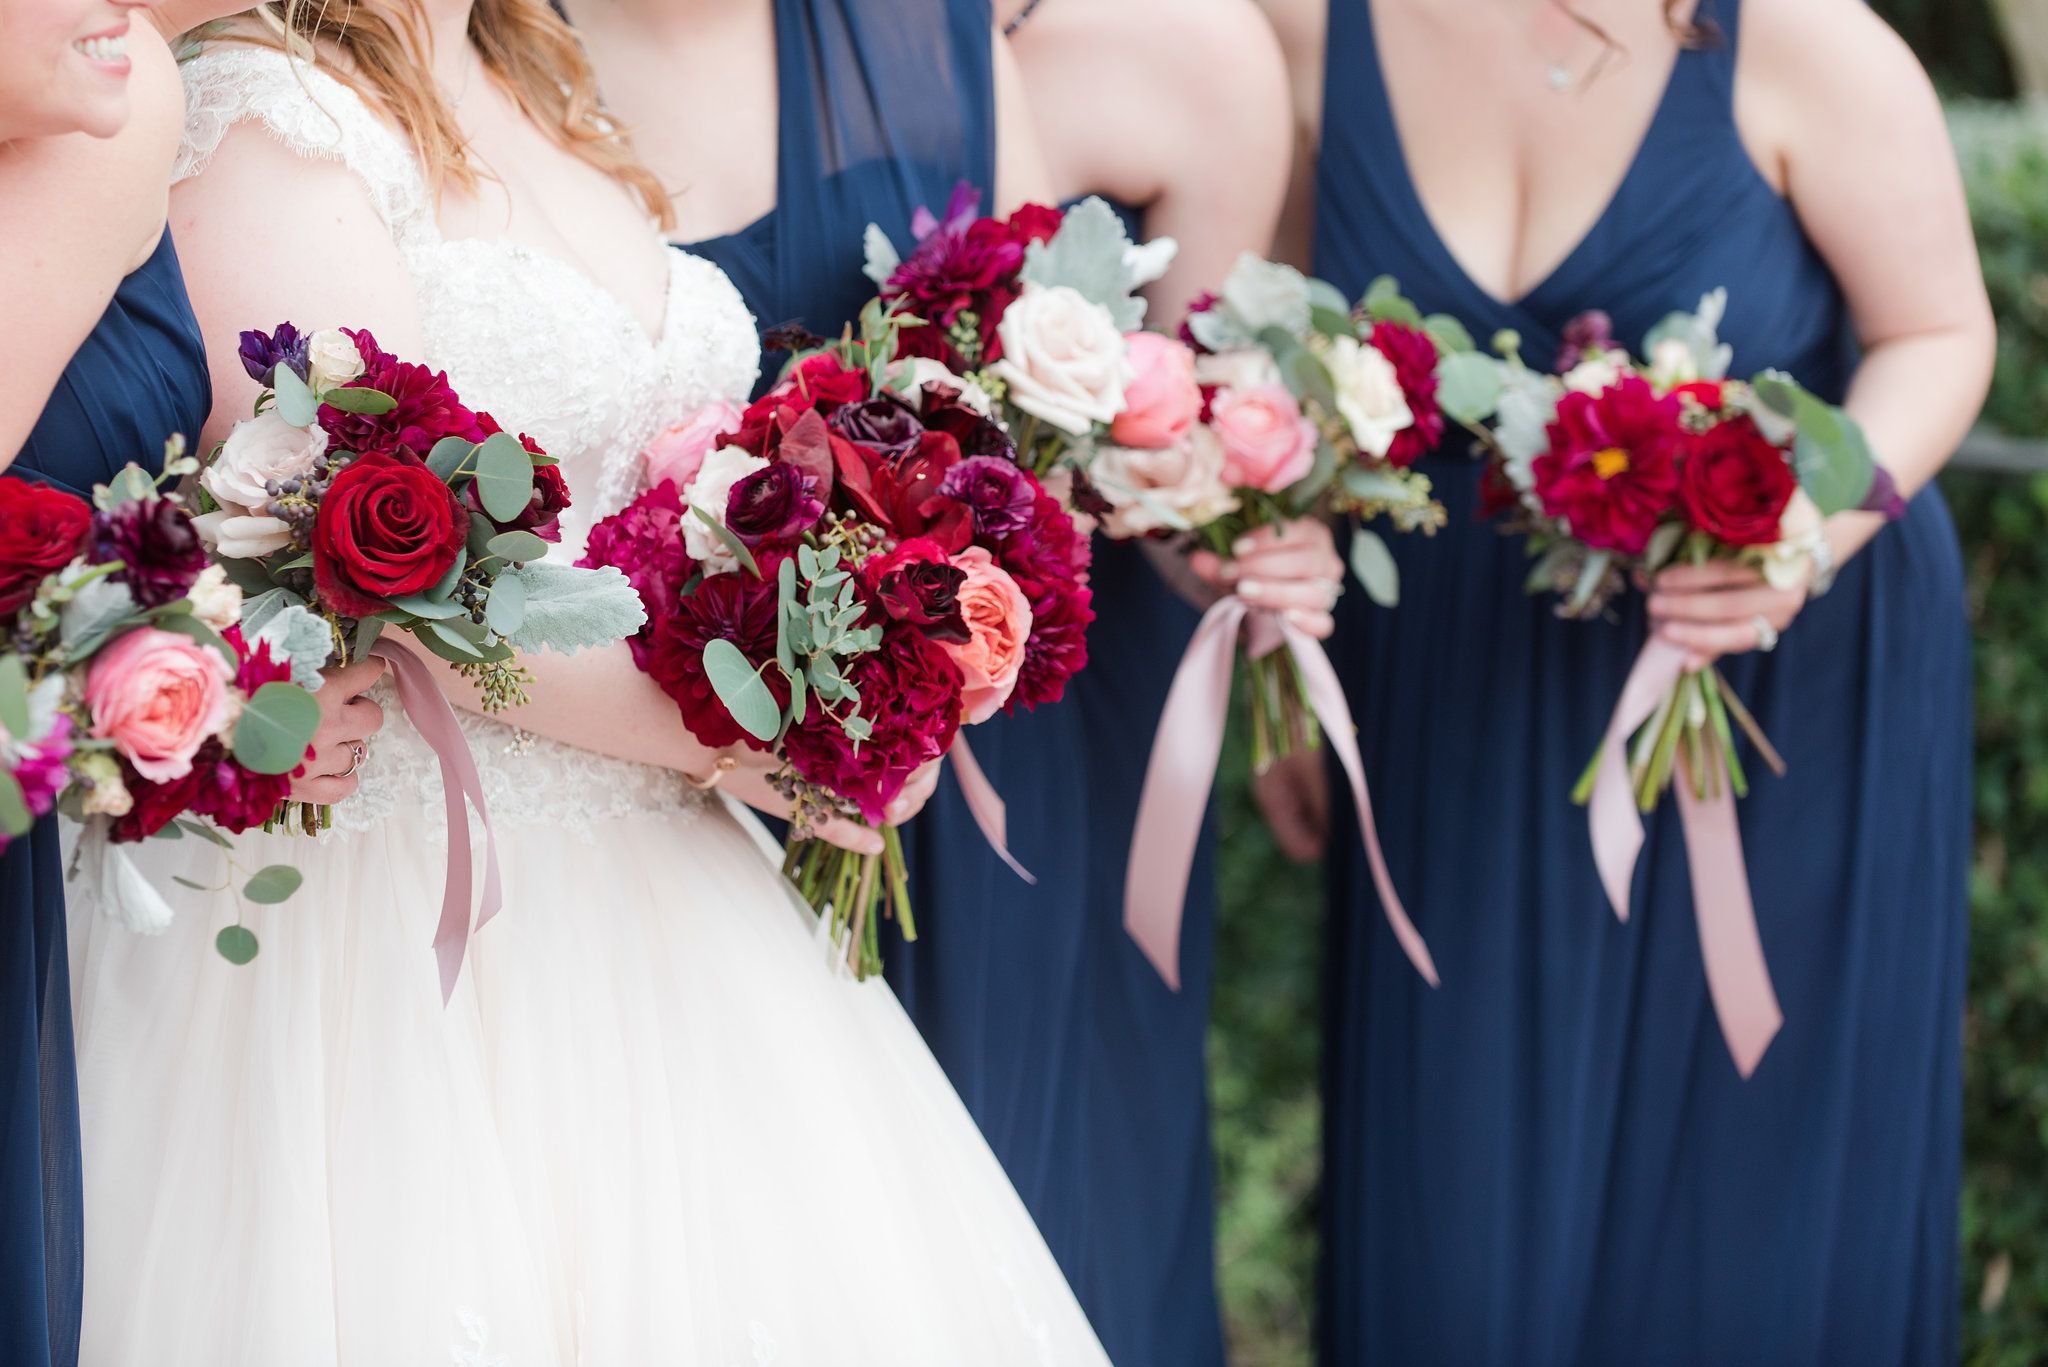 Bold and beautiful florals   Ian's Chapel   Whim Floral   Eric and Jen Photography   Camp Lucy   Wedding Venue   Destination Weddings   Hill Country   Weddings   Wedding Inspiration  